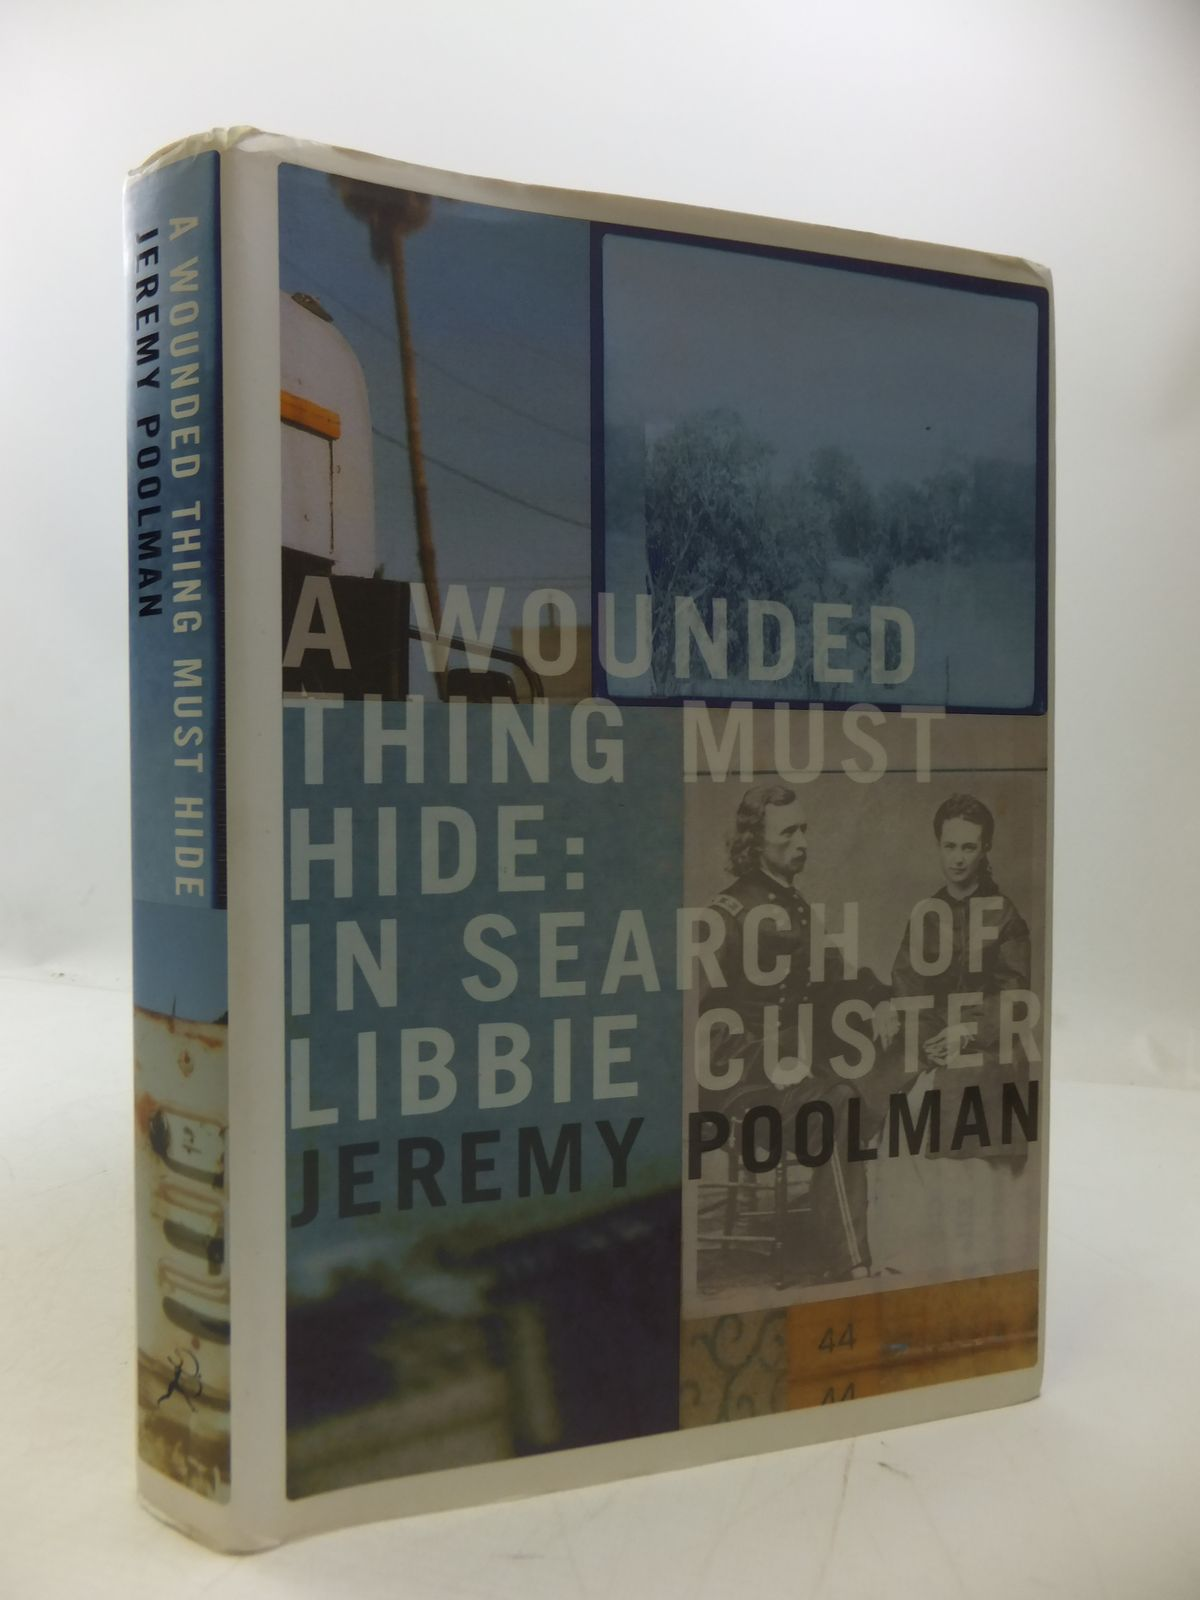 Photo of A WOUNDED THING MUST HIDE: IN SEARCH OF LIBBIE CUSTER